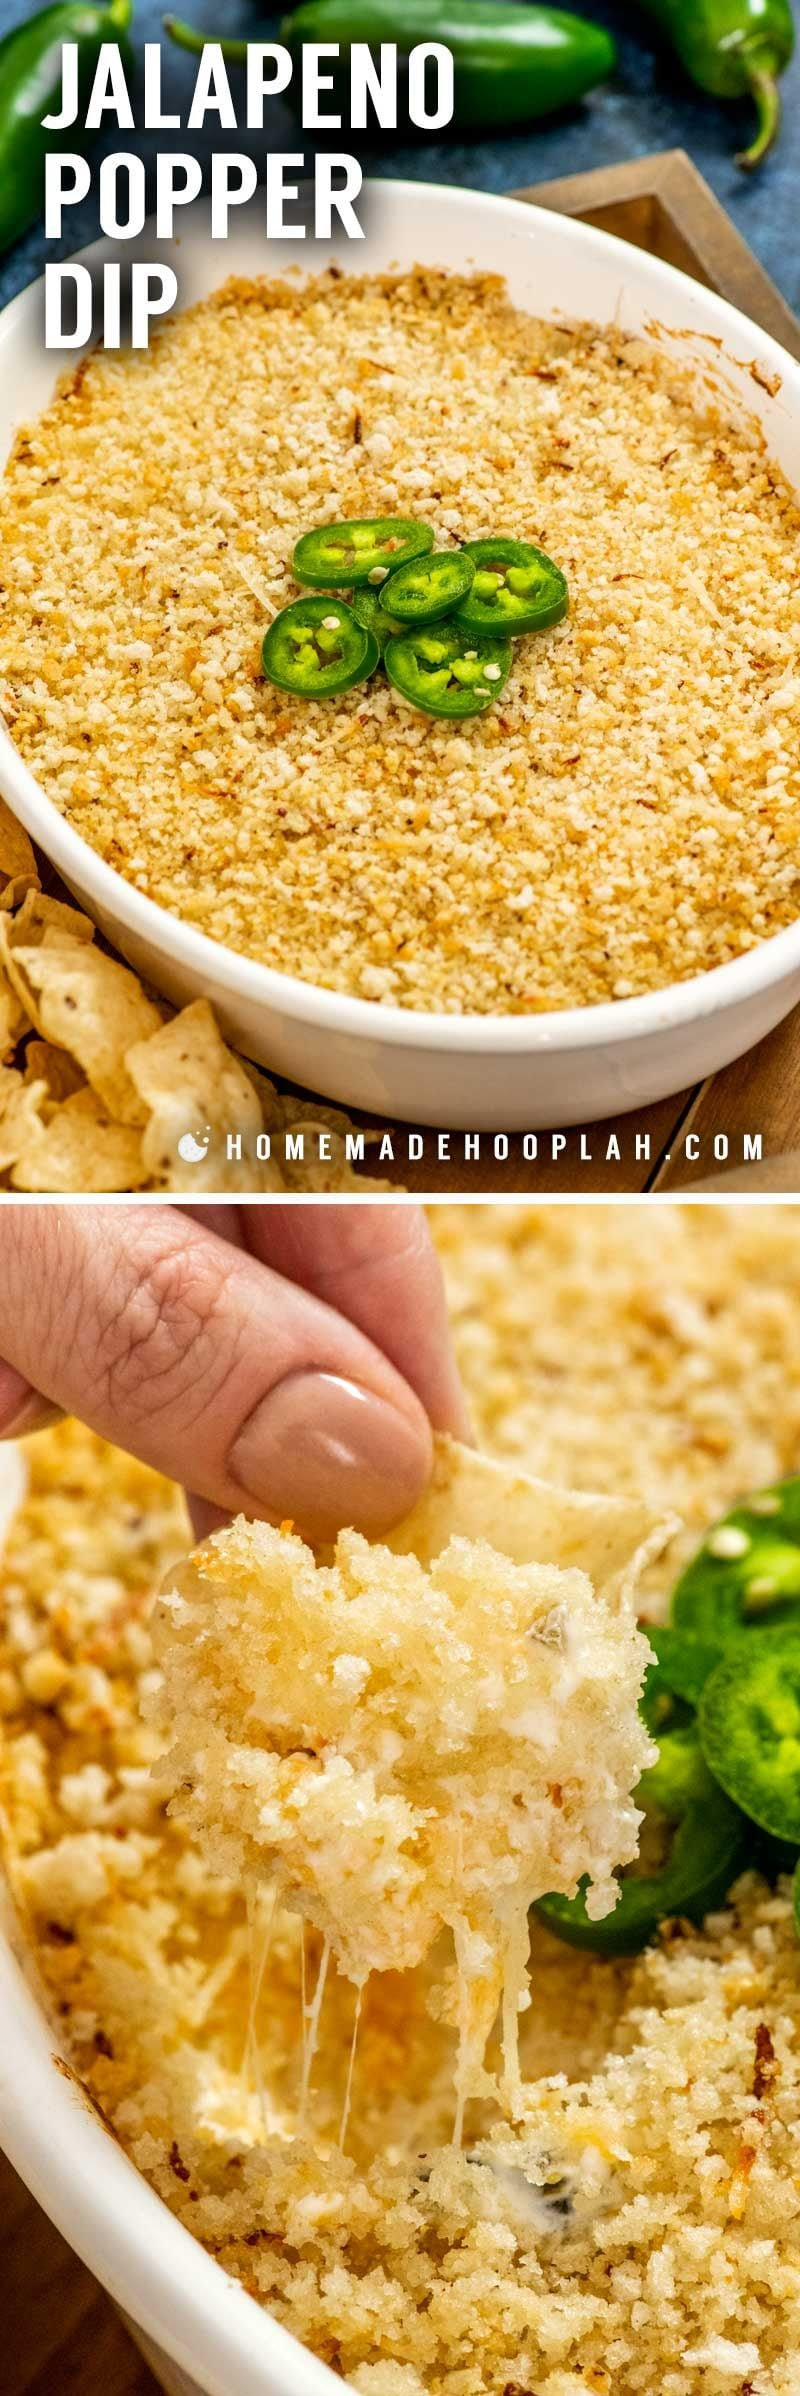 Jalapeno Popper Dip! With warm, gooey cheeses, spicy jalapenos, and a crunchy panko topping, this jalapeno popper dip is the fun, crowd-pleasing twist on the popular finger food. | HomemadeHooplah.com